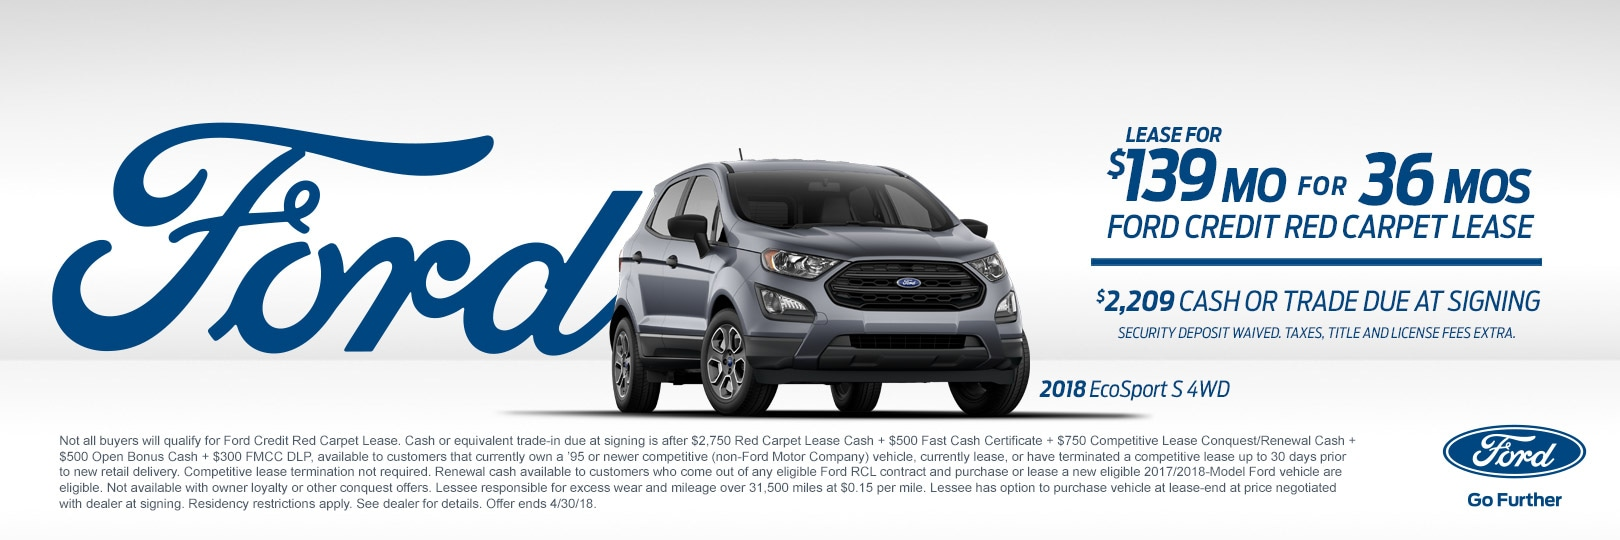 Fred Beans Ford Doylestown >> Spring Sales Event | Fred Beans Ford of Doylestown